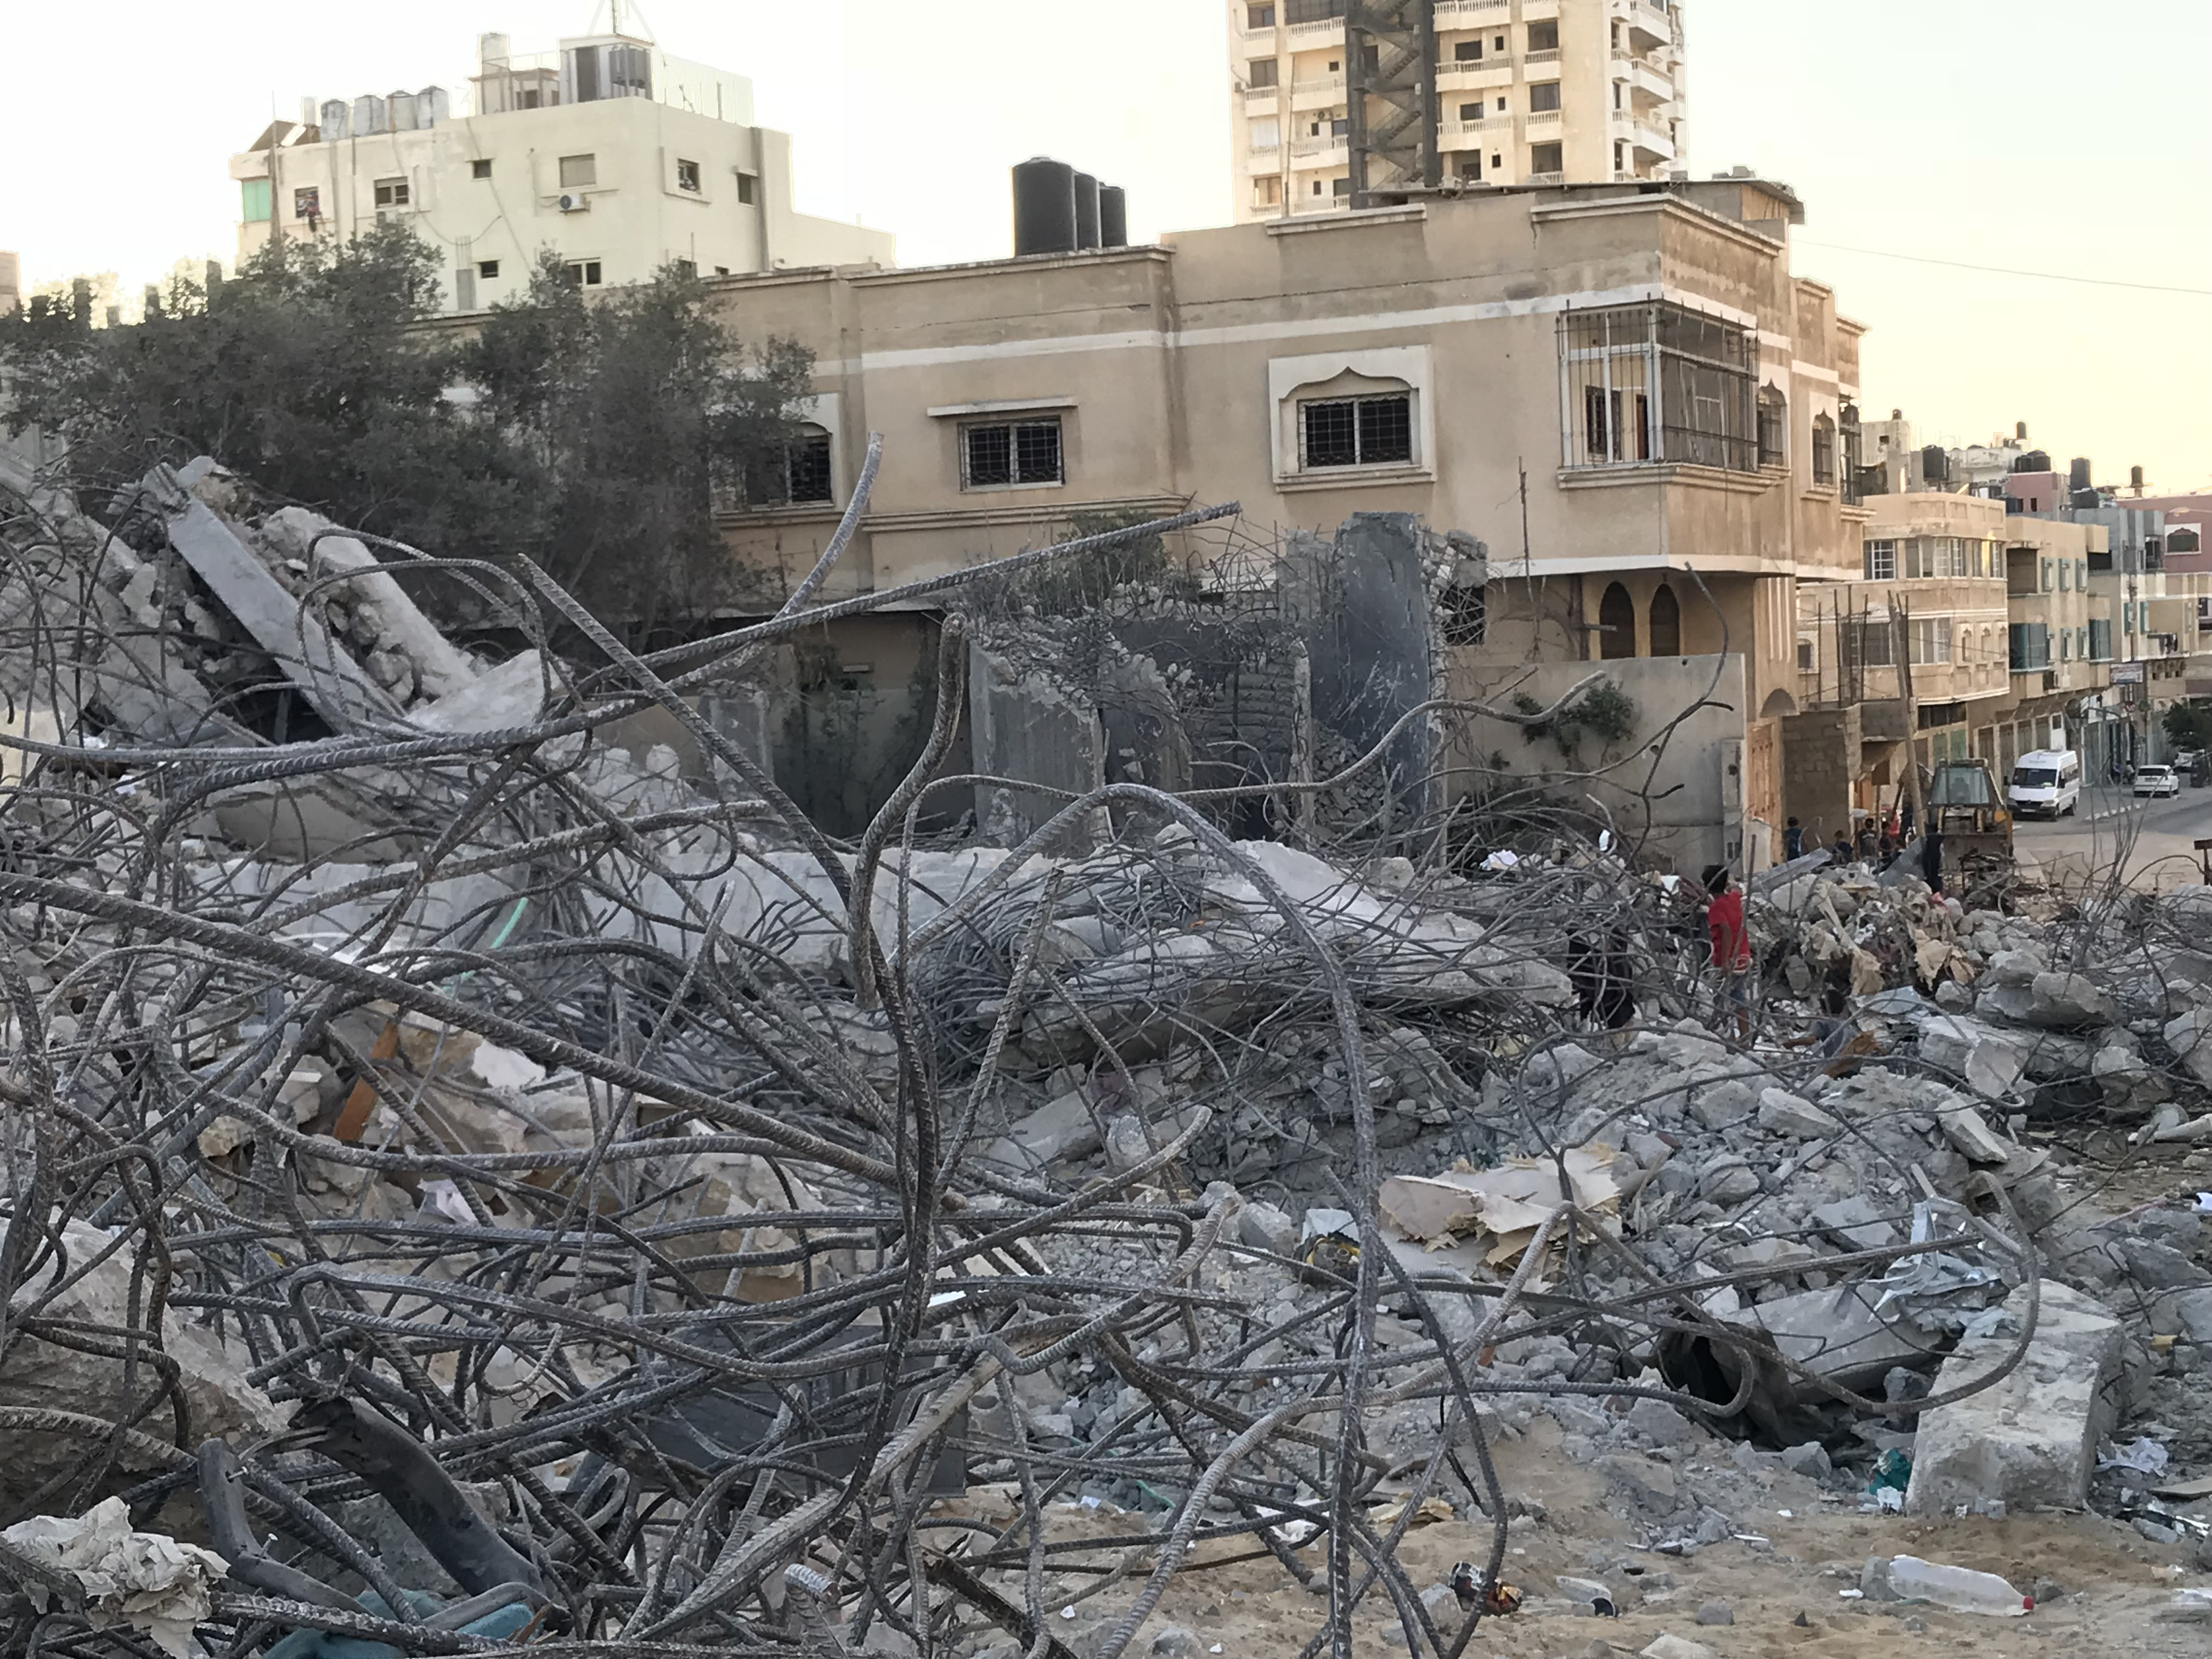 Children playing in the rubble of al-Meshal Cultural Center in the Gaza Strip. (Jen Marlowe)